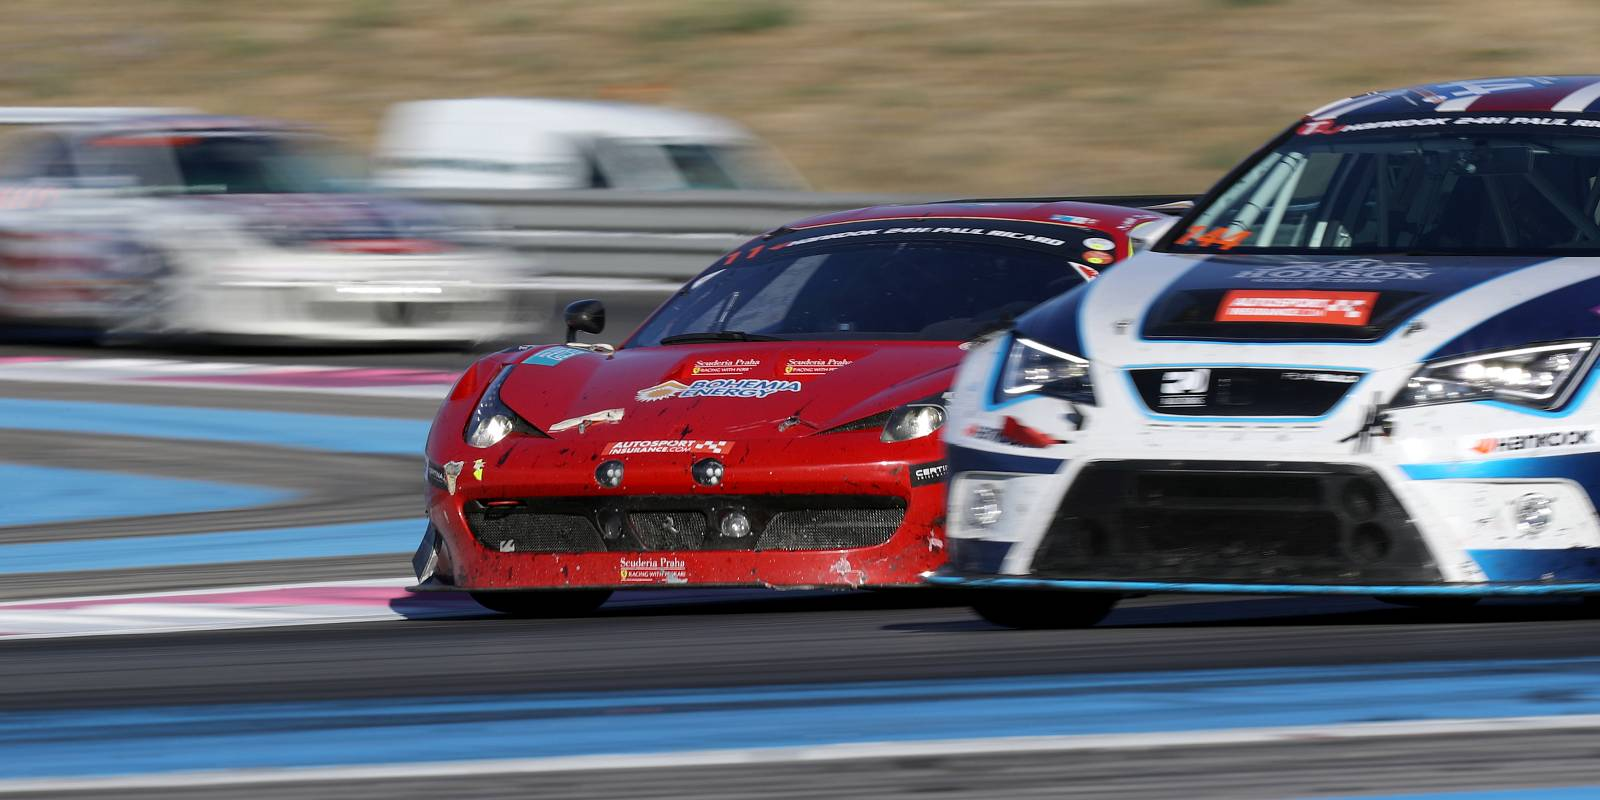 peter-kox-24h-paul-ricard-2016-025